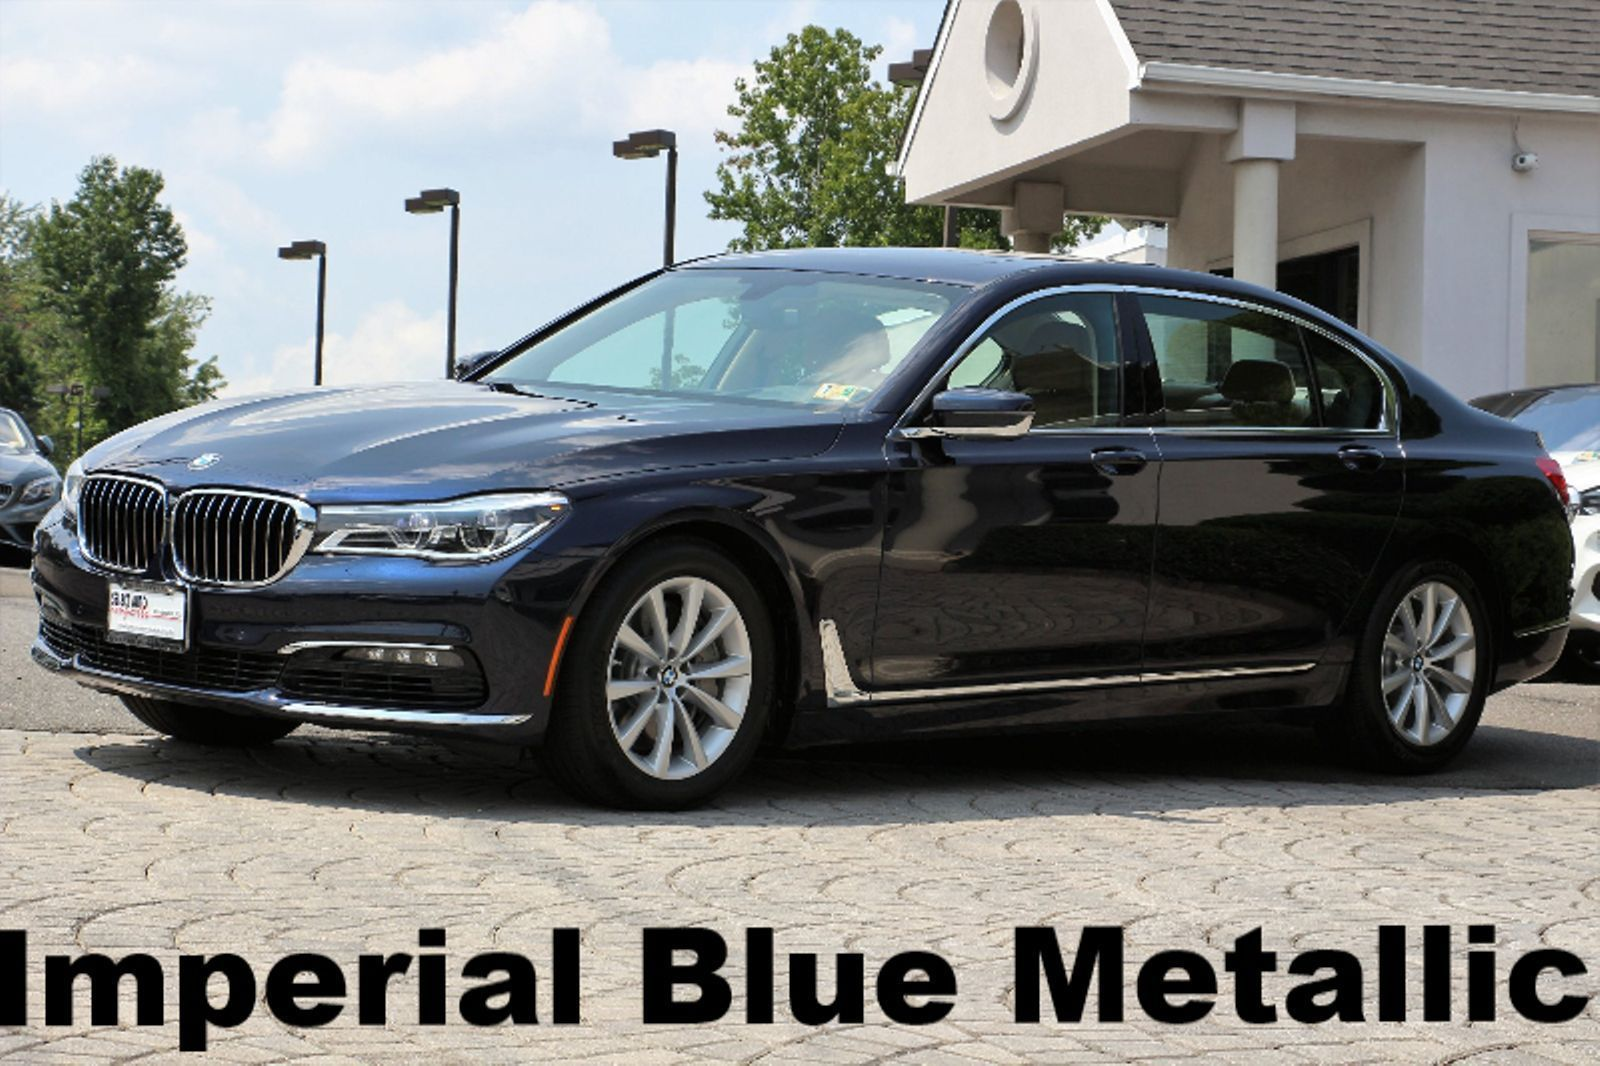 Bmw 7 Series 750i Xdrive 2016 Imperial Blue Metallic On Zagora